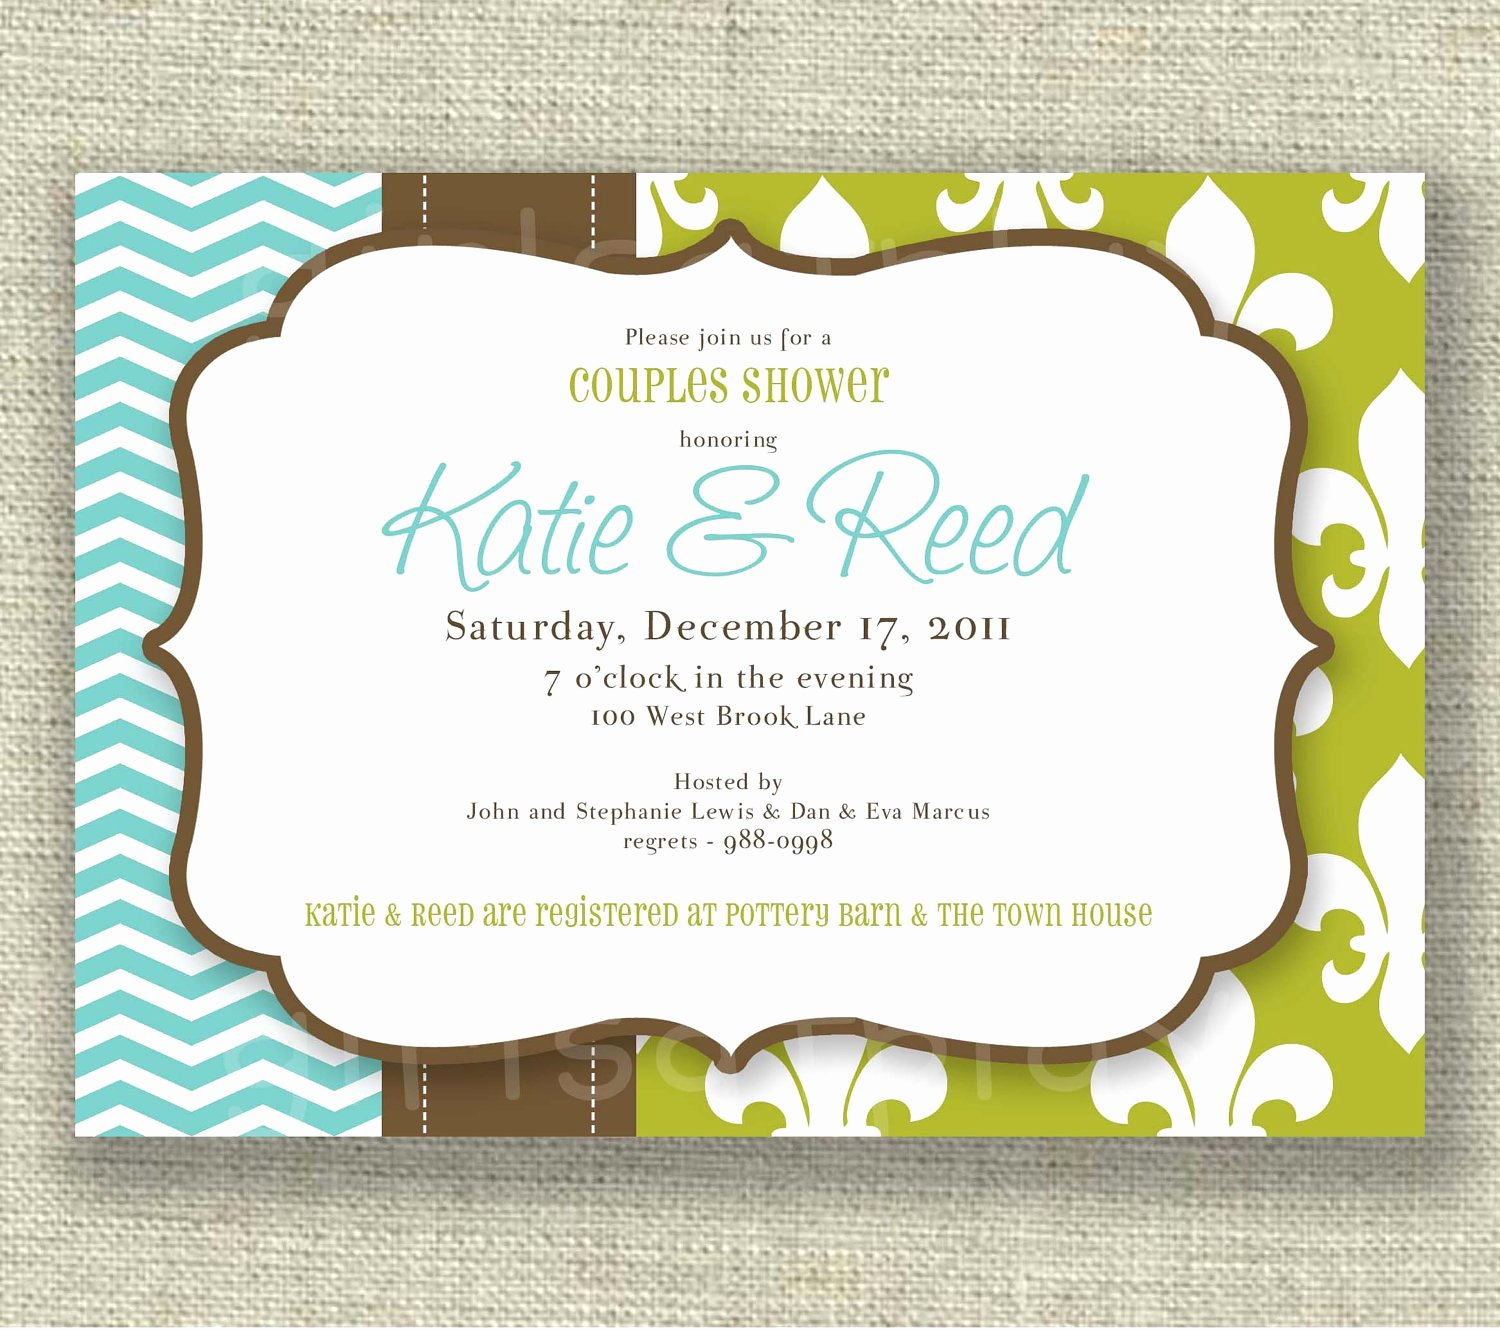 Couples Shower Invitations Template Unique Couples Wedding Shower Invitations Wording Yourweek